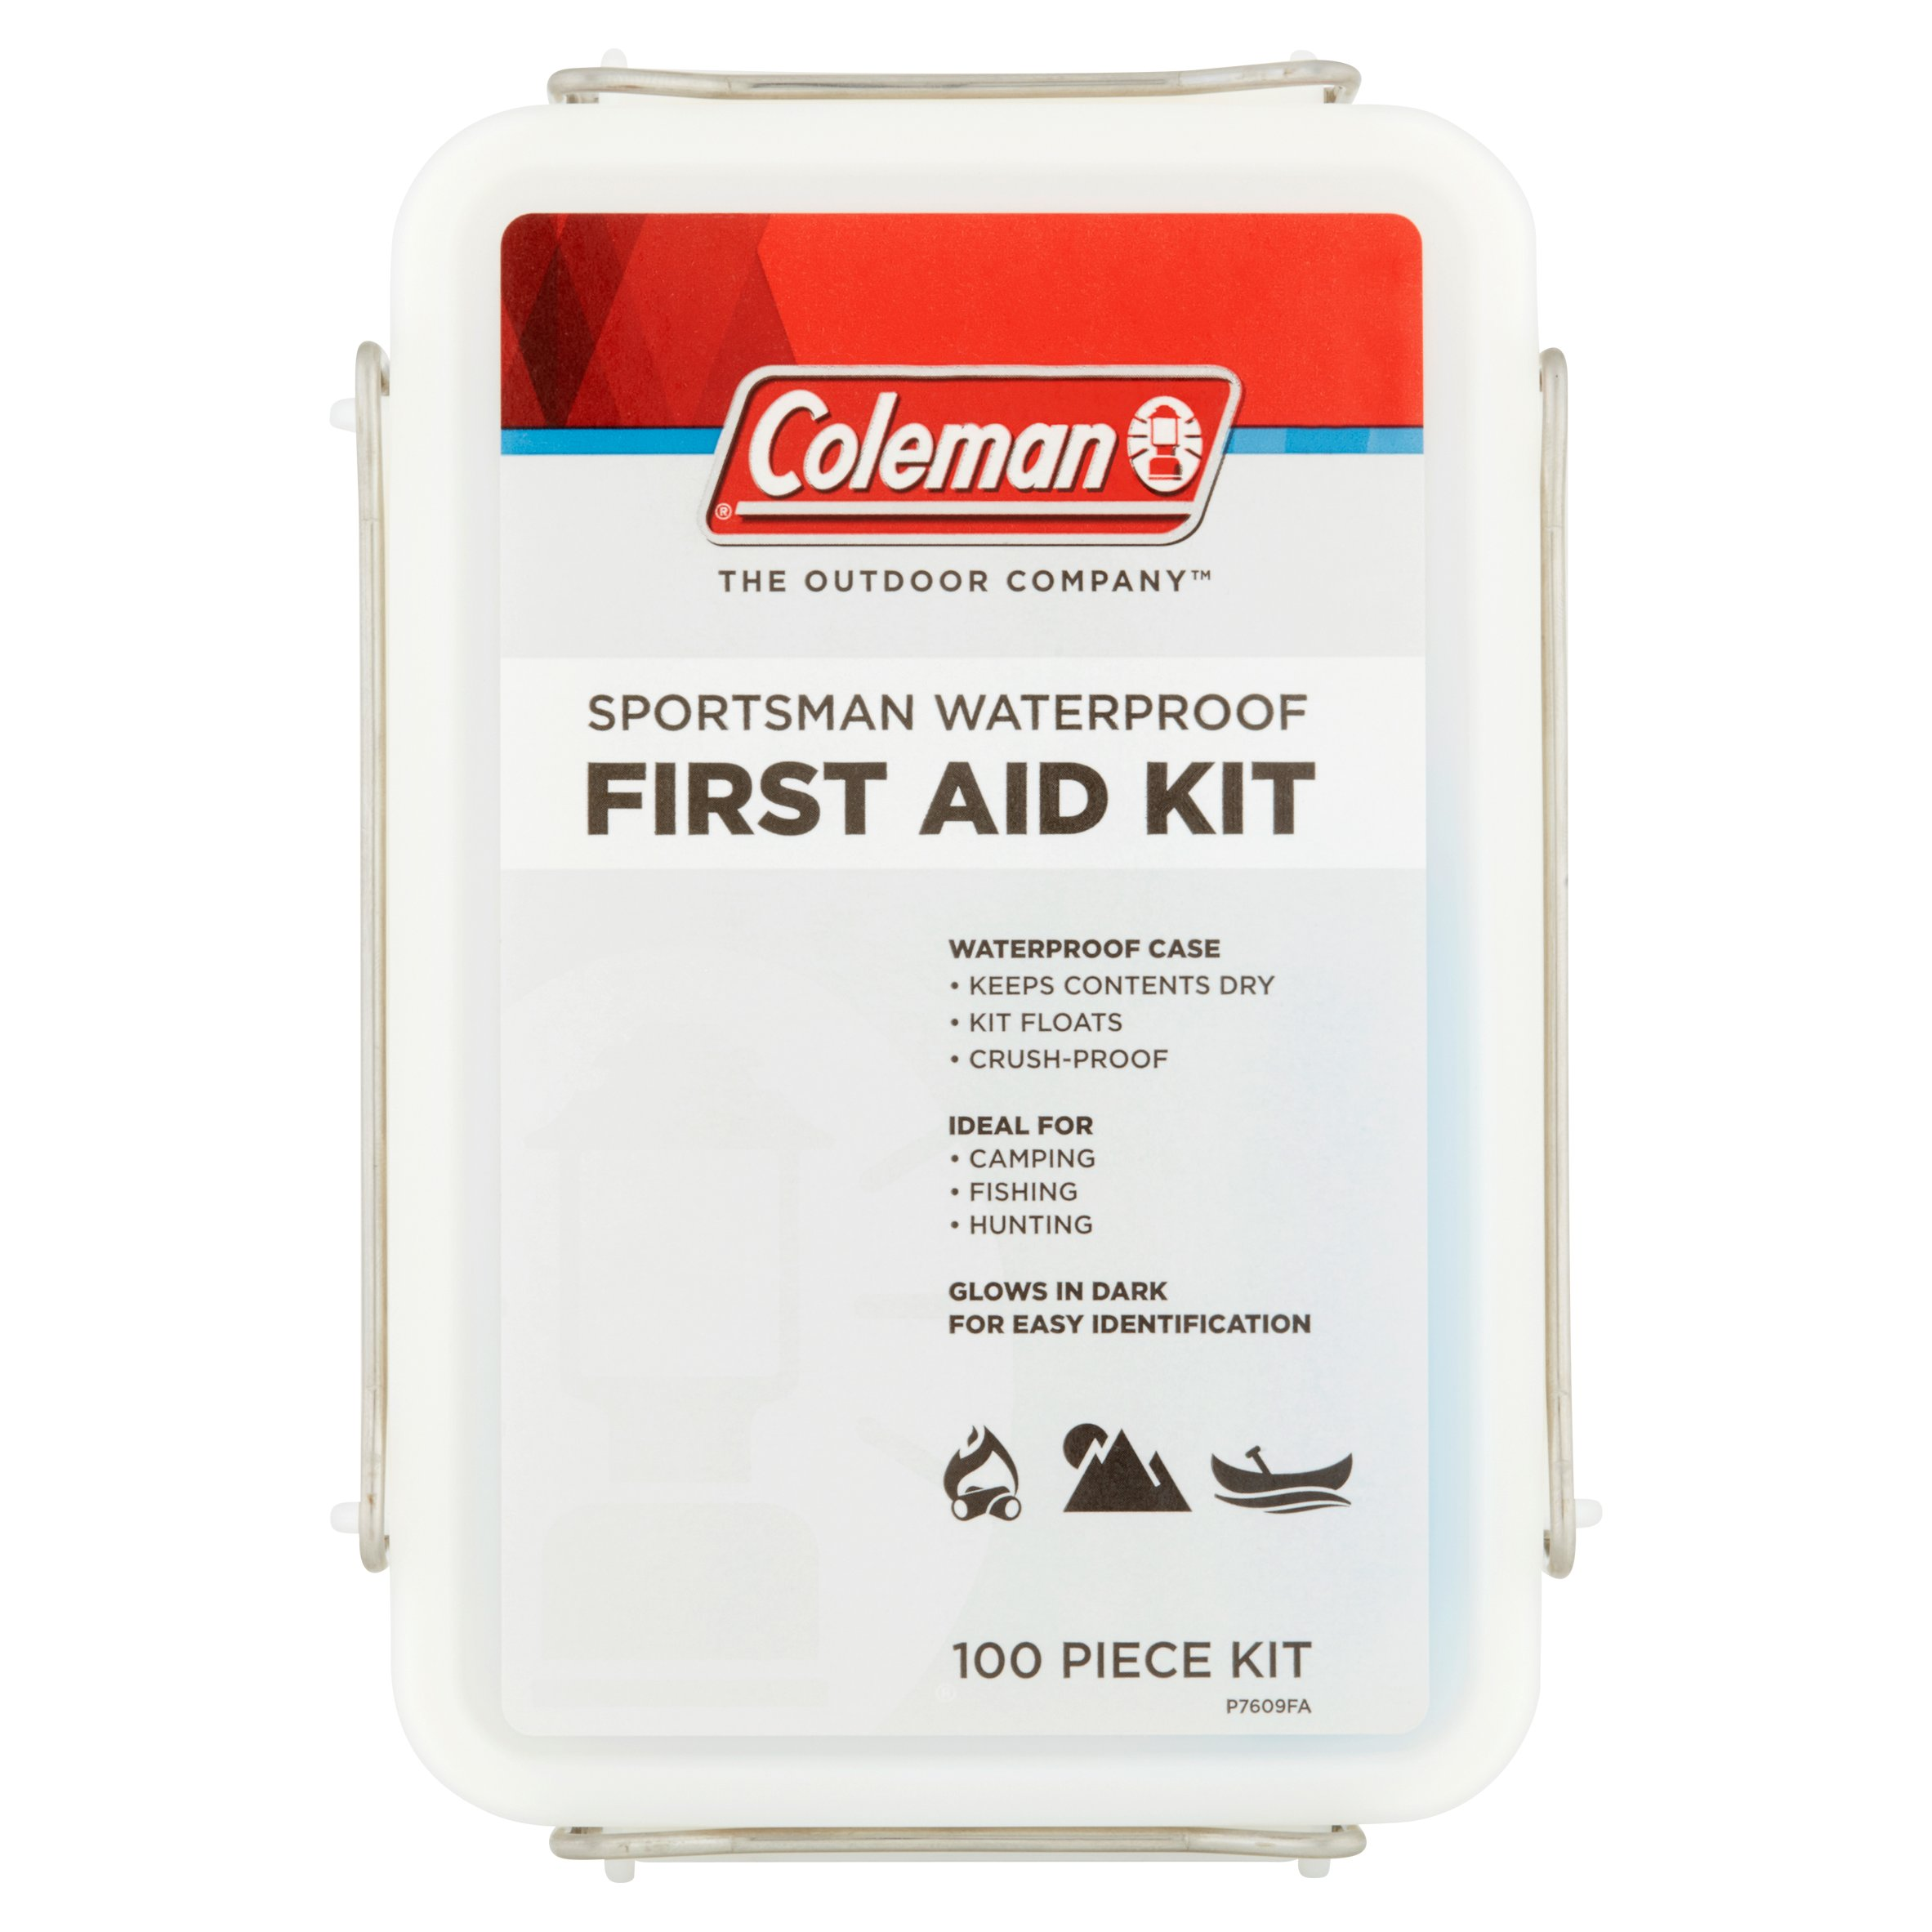 Coleman The Outdoor Company Sportsman Waterproof First Aid Kit 100 Piece Kit by Wisconsin Pharmacal Company, LLC